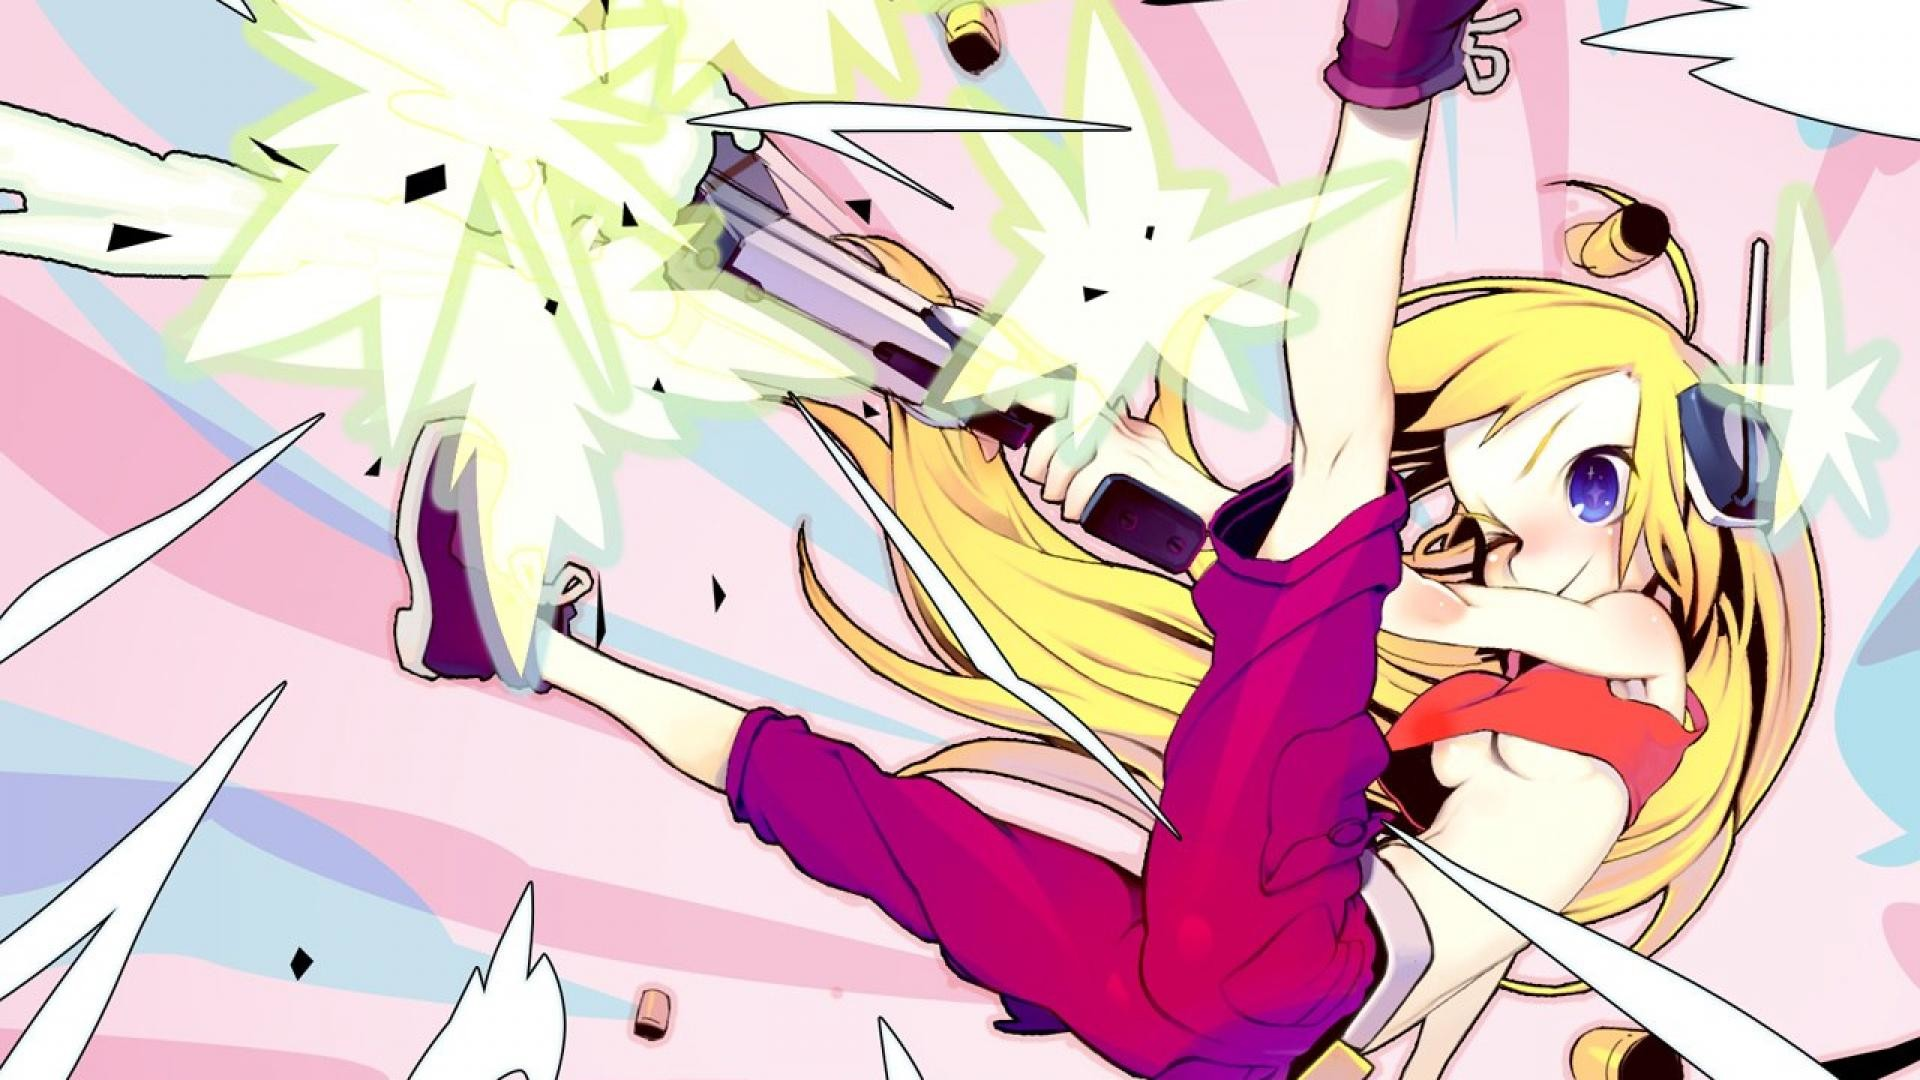 1920x1080 Cave story anime weapons manga wallpaper |  | 121914 | WallpaperUP